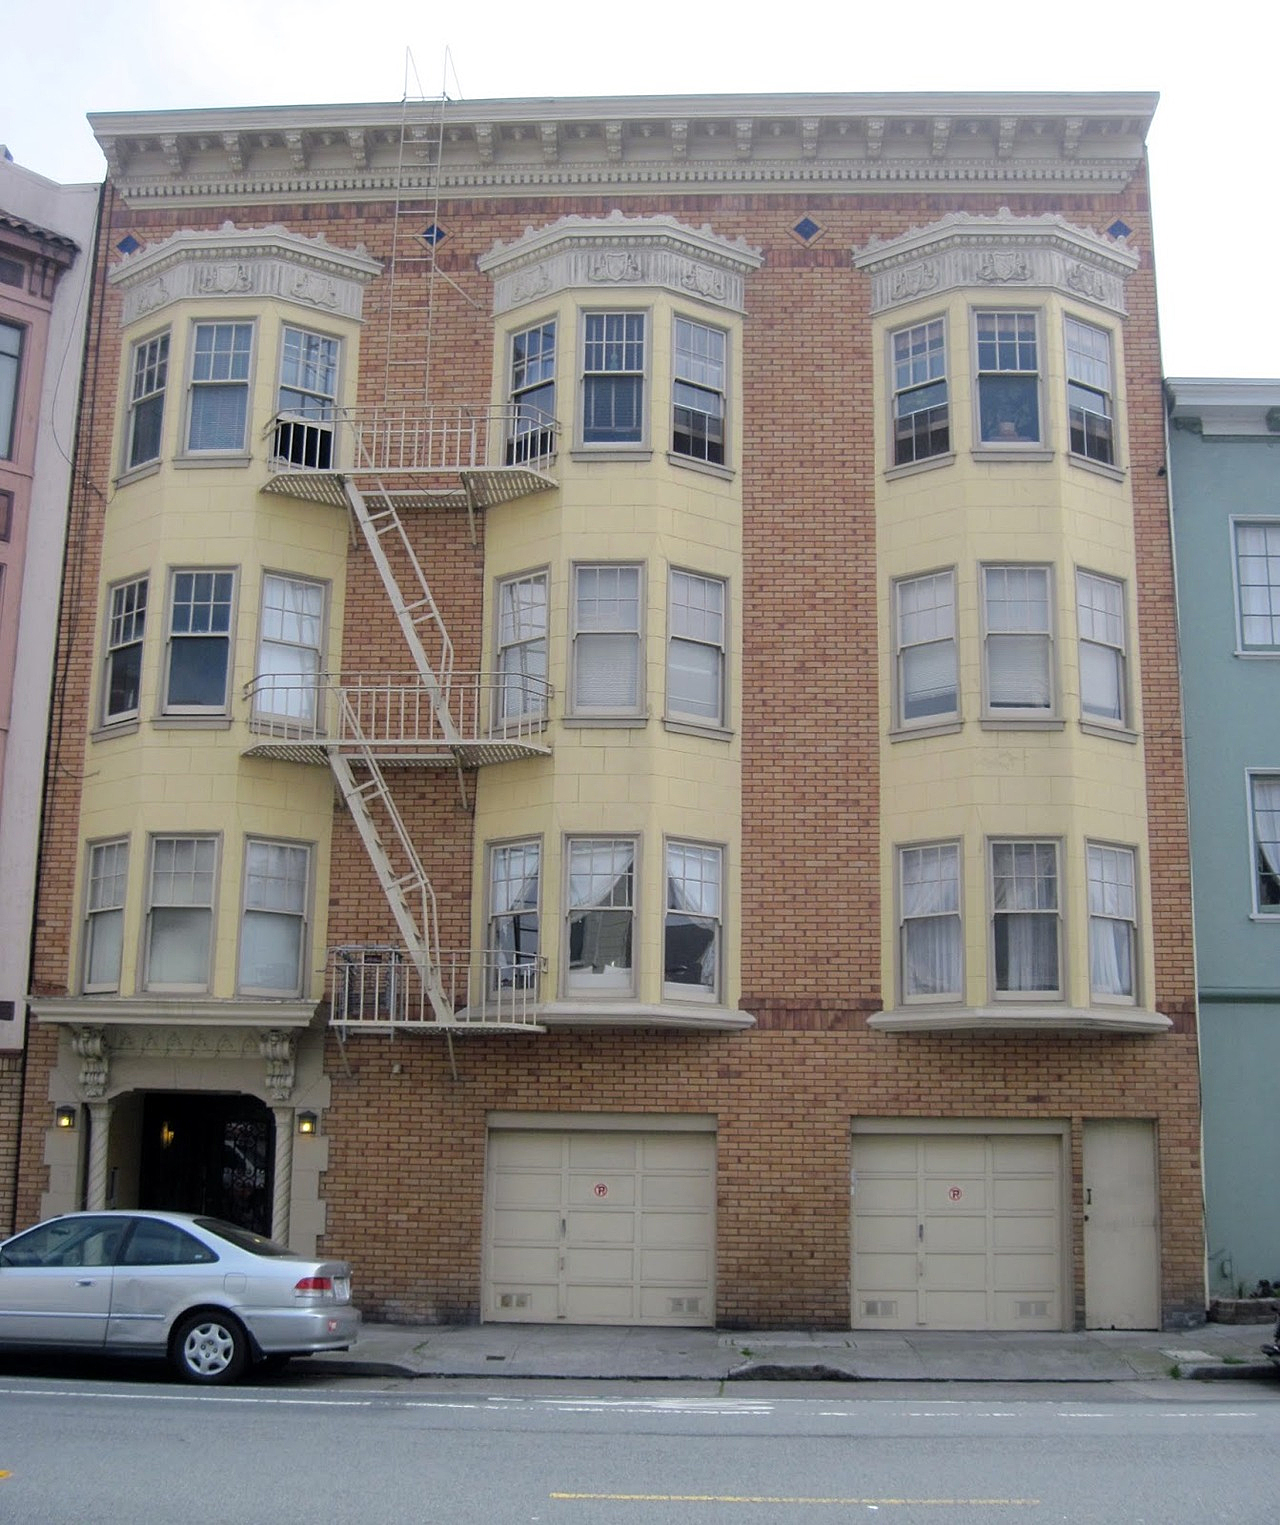 1827 Golden Gate Avenue, San Francsico -- site of the SLA hideout